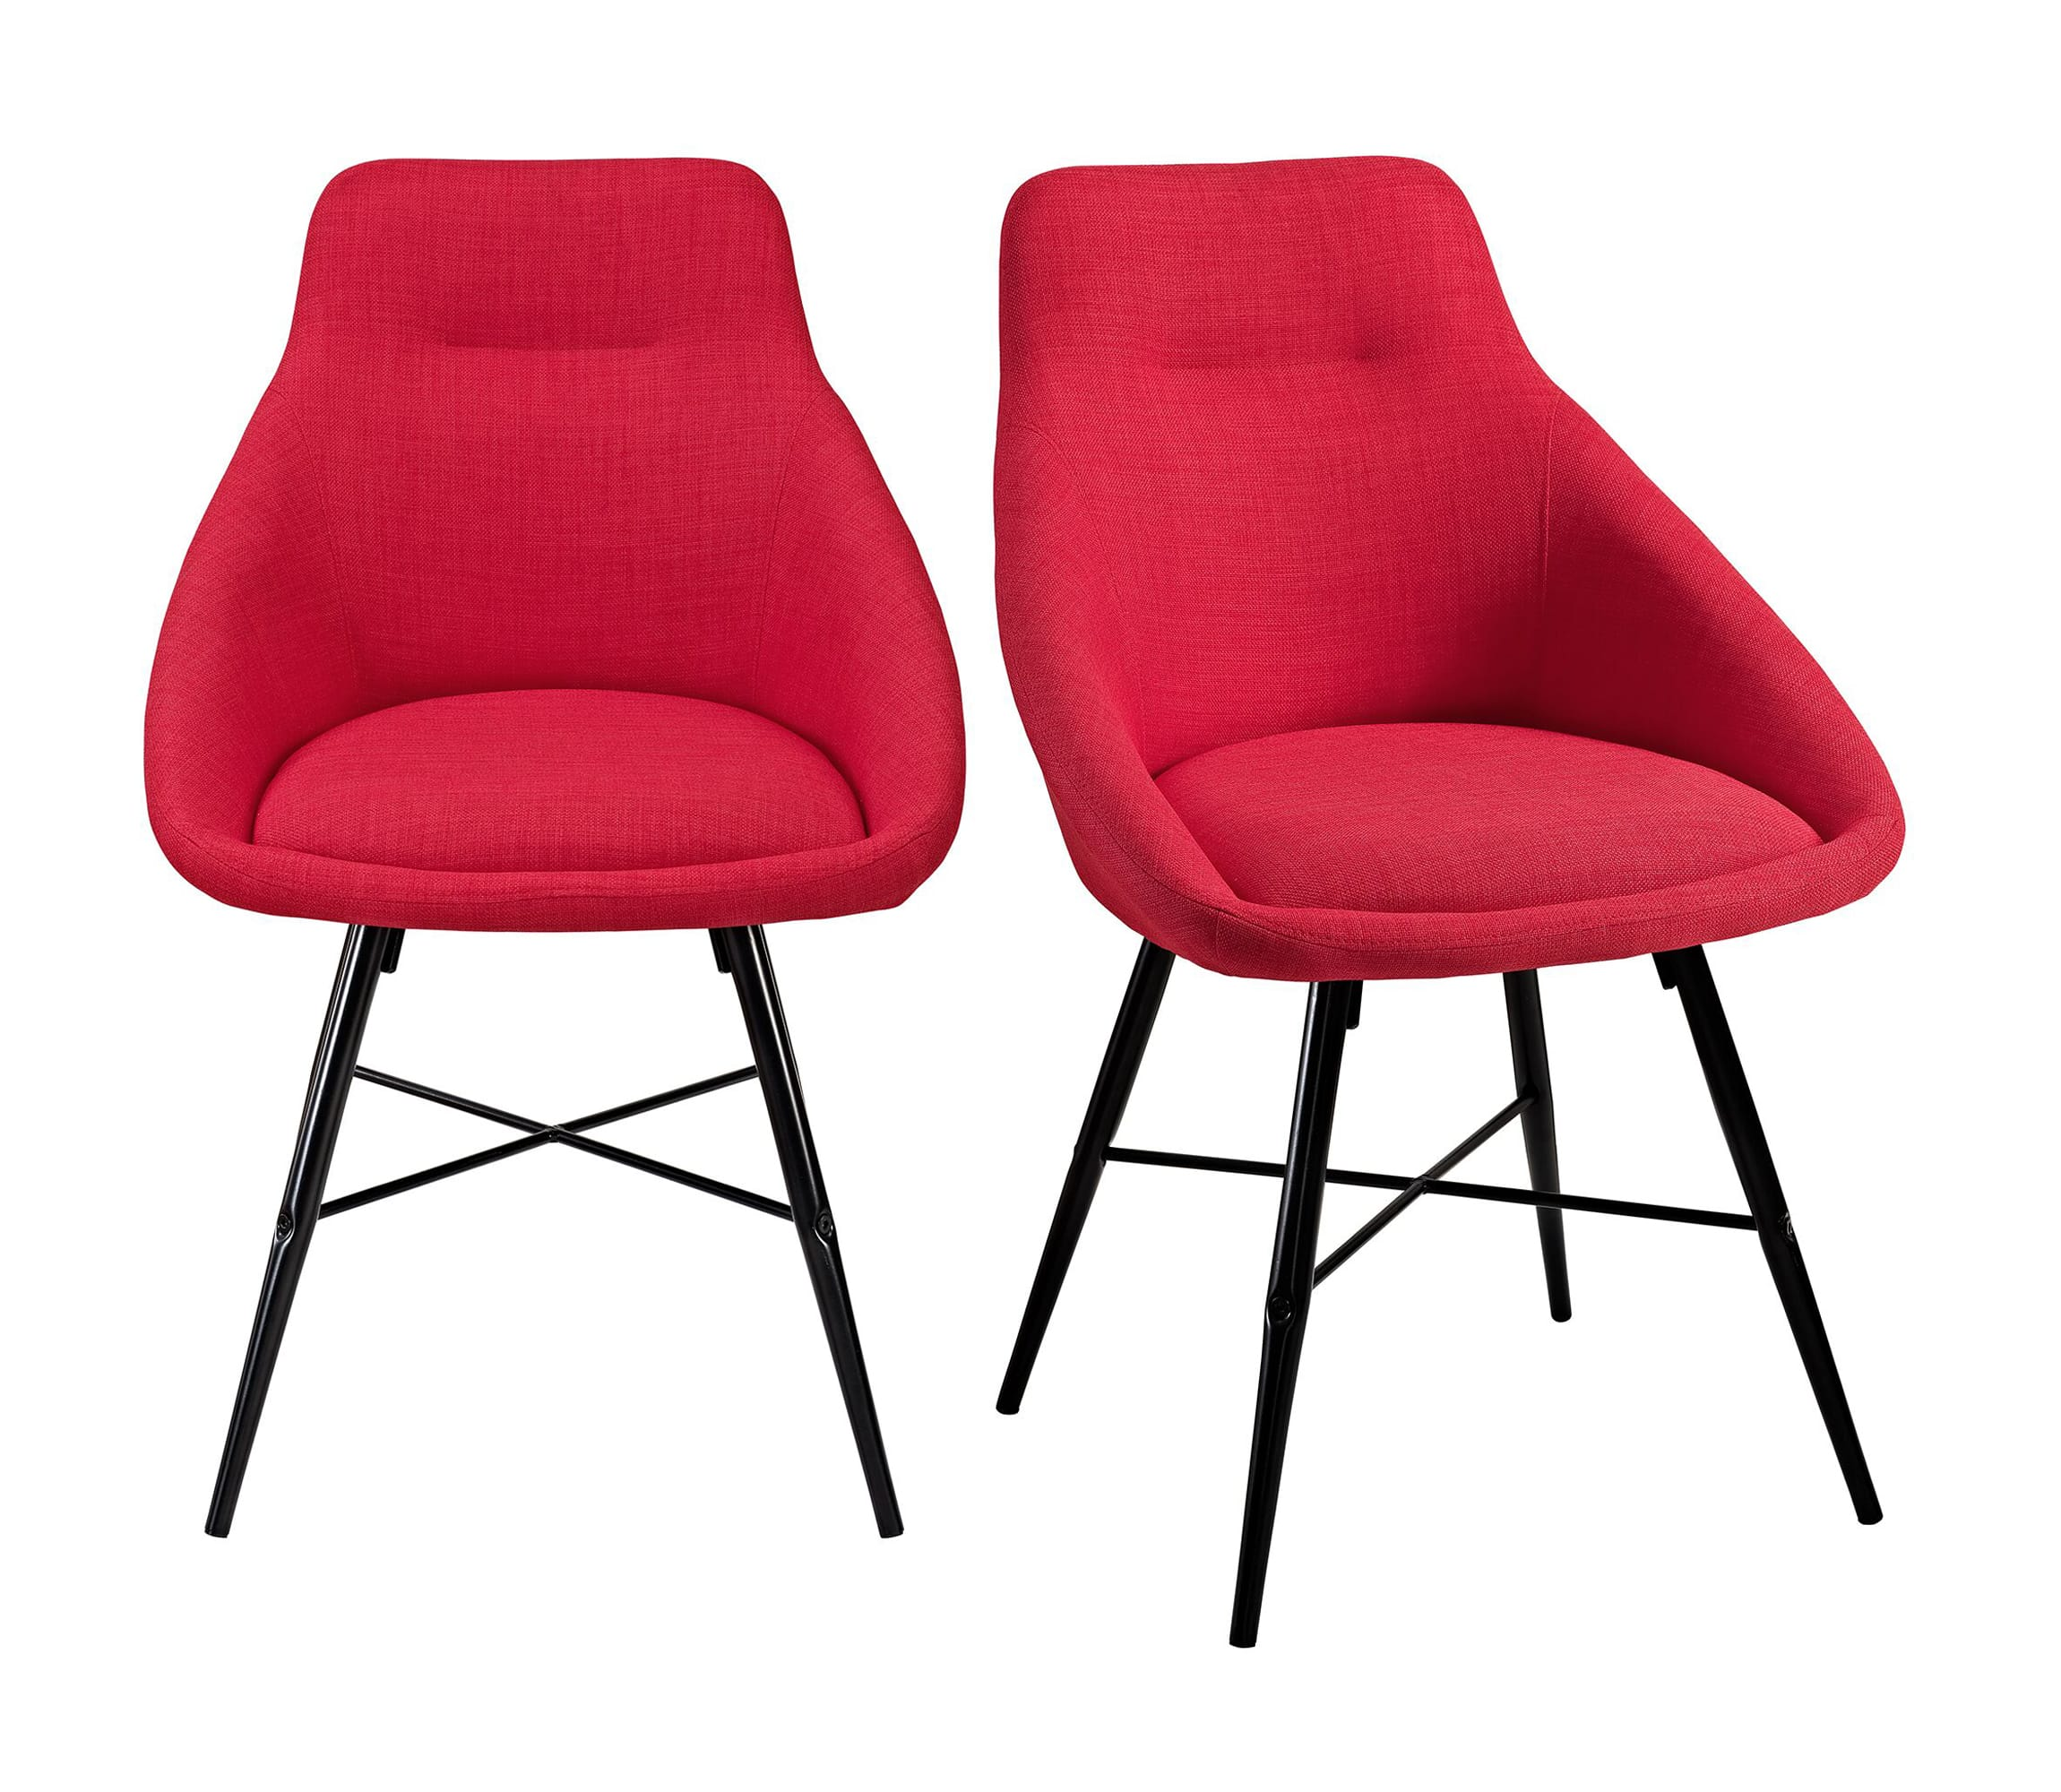 Picture of: Mid Century Modern Dining Chair Set Of 2 Red W Metal Legs By Walker Edison